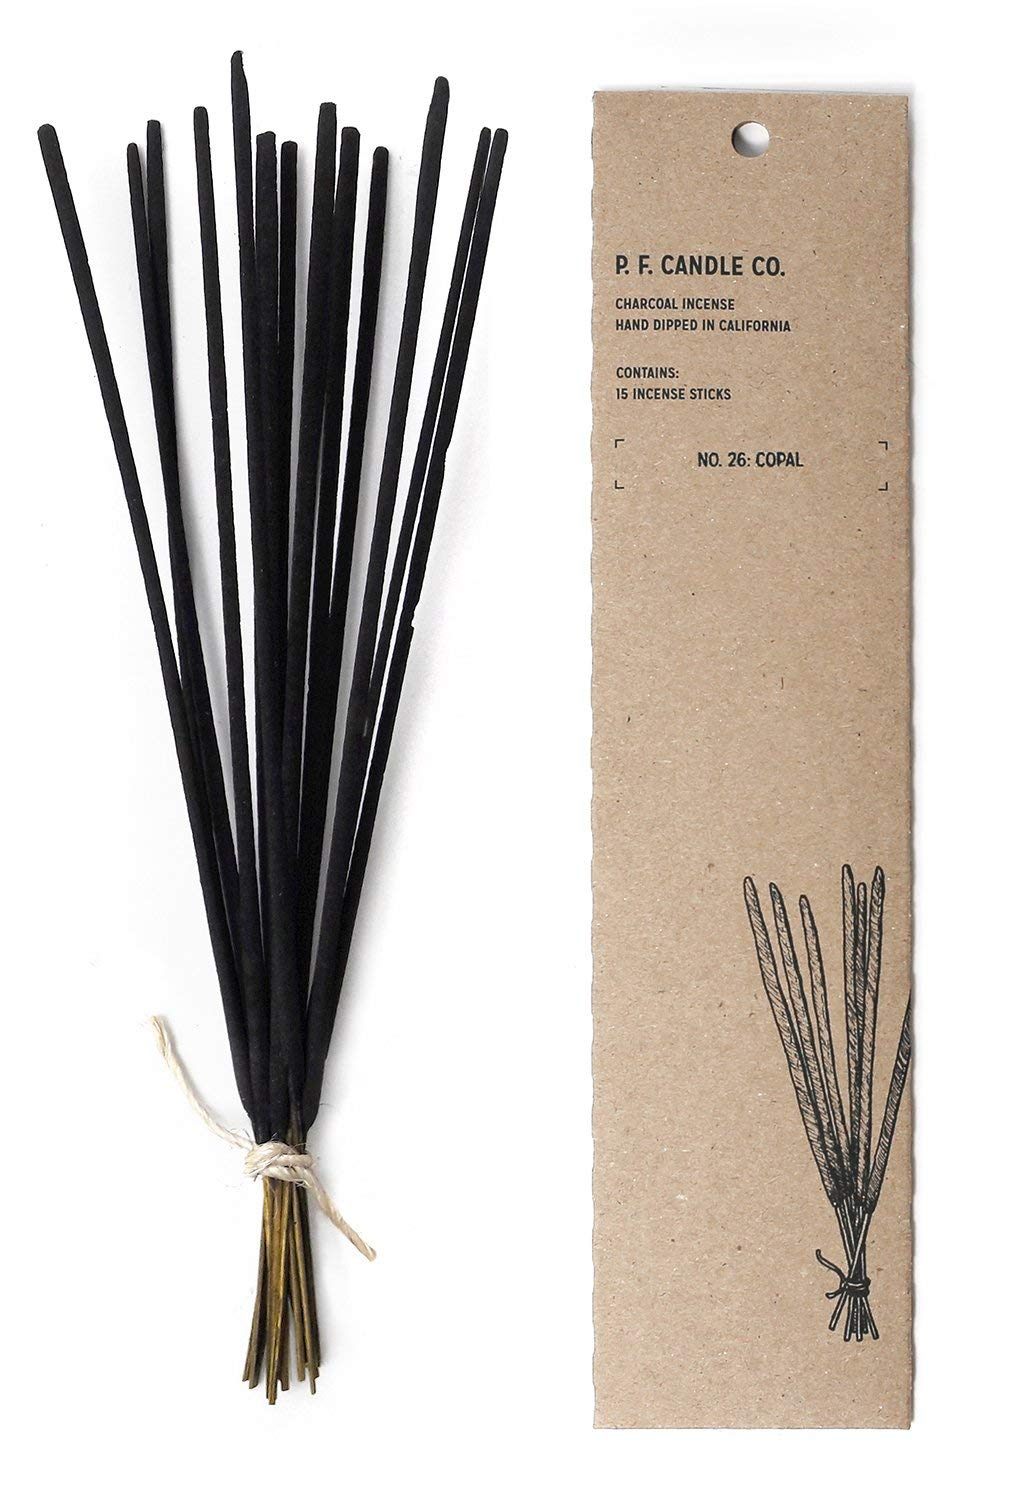 P.F. Candle Co. - No. 26: Copal Incense (2-Pack)